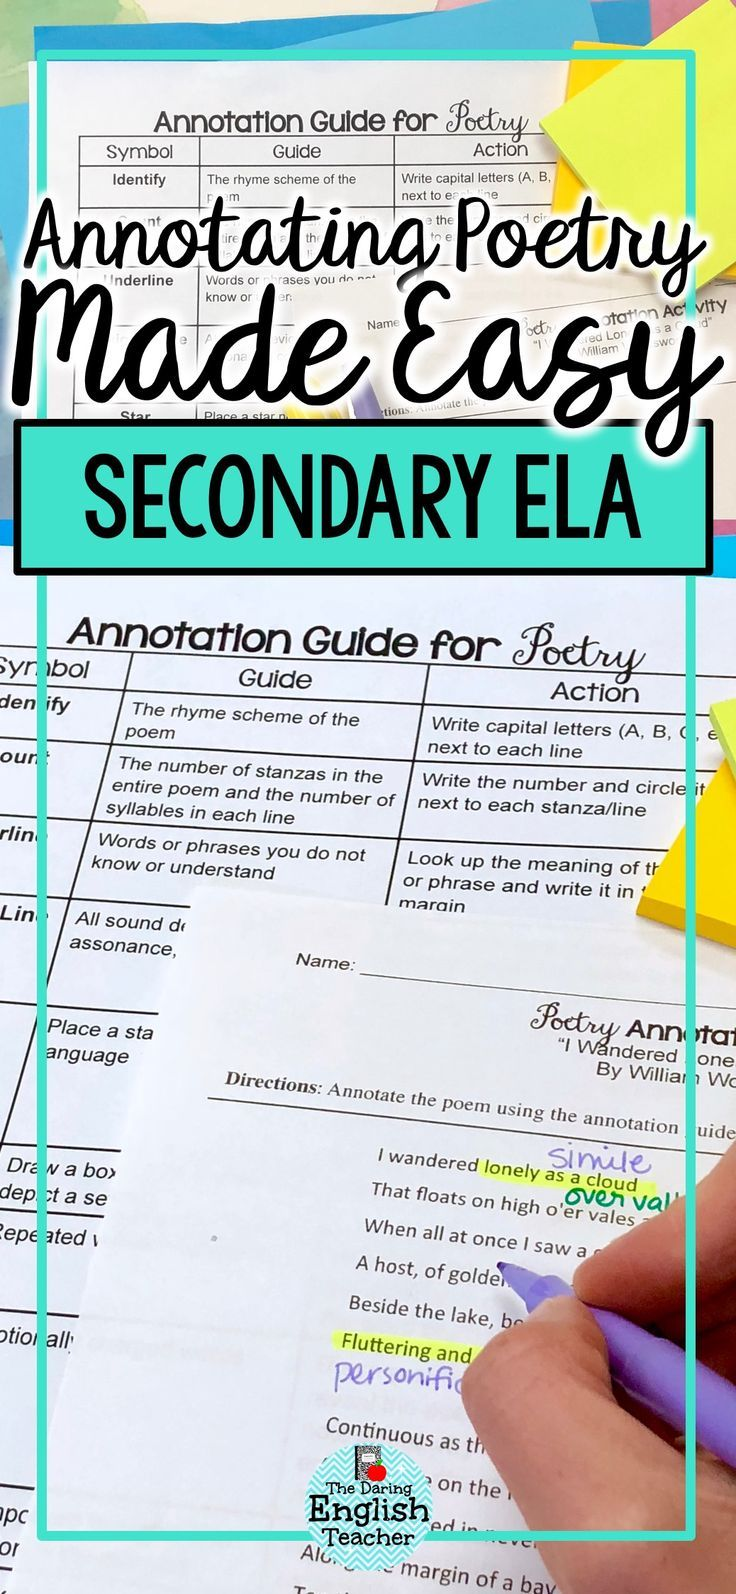 Teach poetry with ease with this annotating poetry made